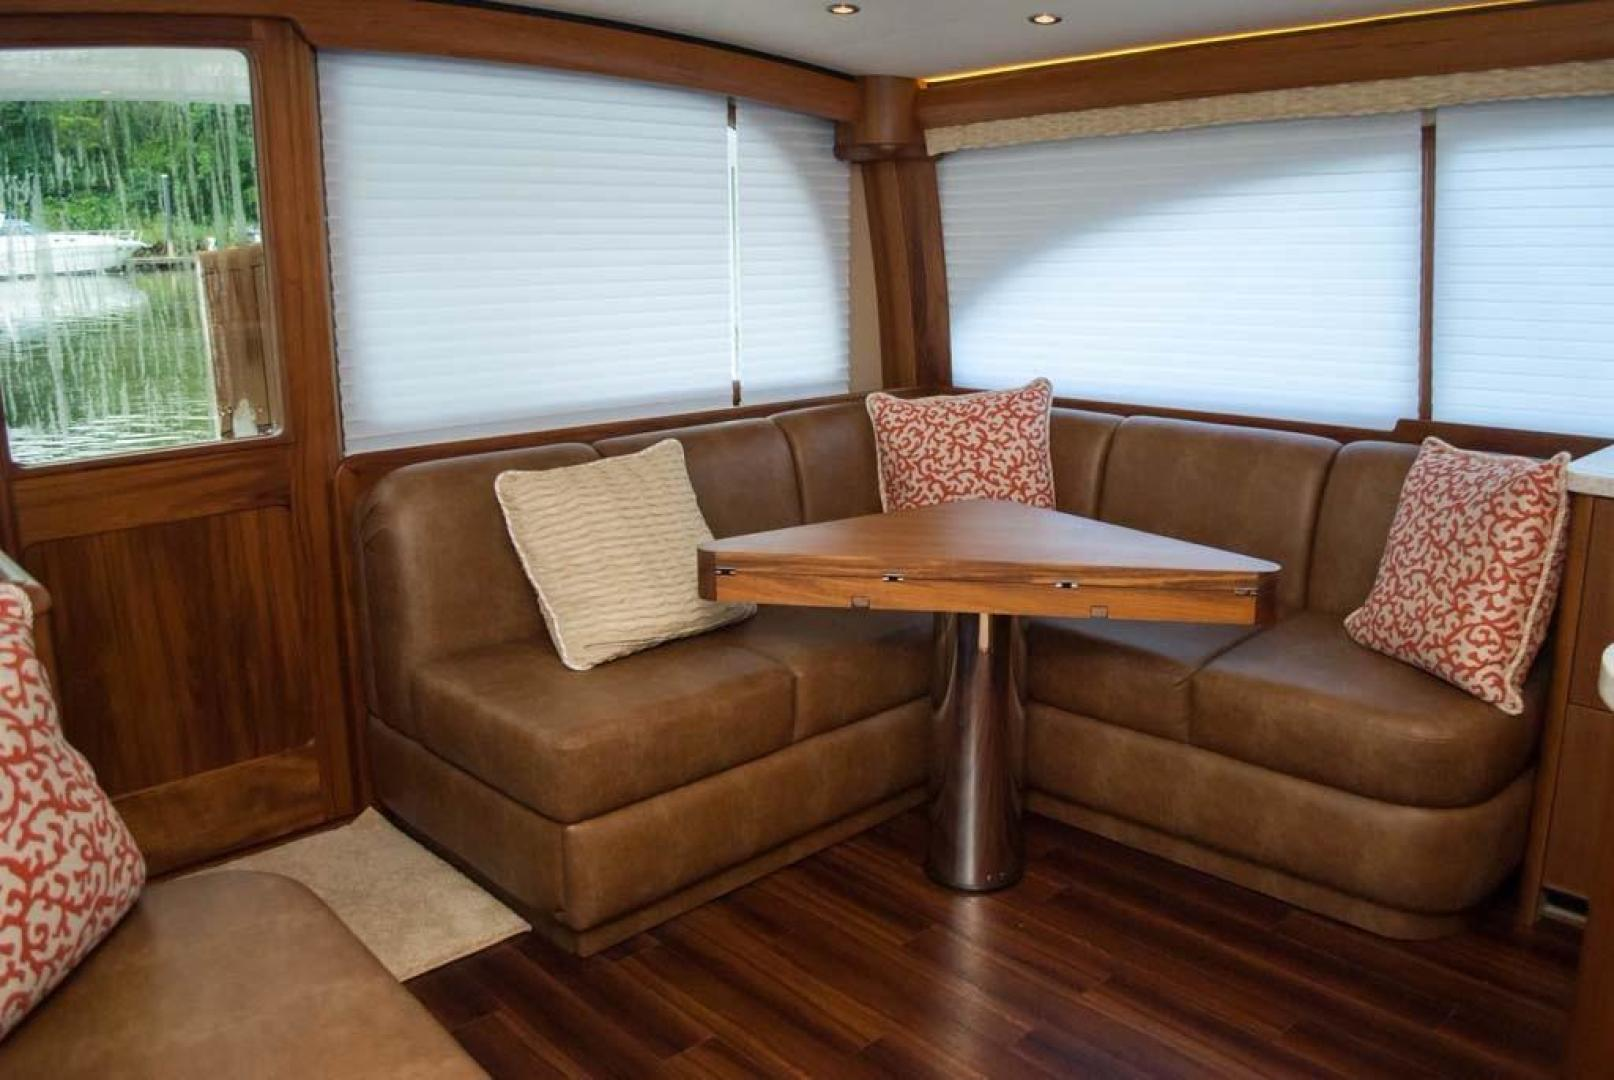 F&S-Convertible-2013-Triple-F-Coral-Gables-Florida-United-States-Salon-Port-Aft-Settee-and-Table-1016942